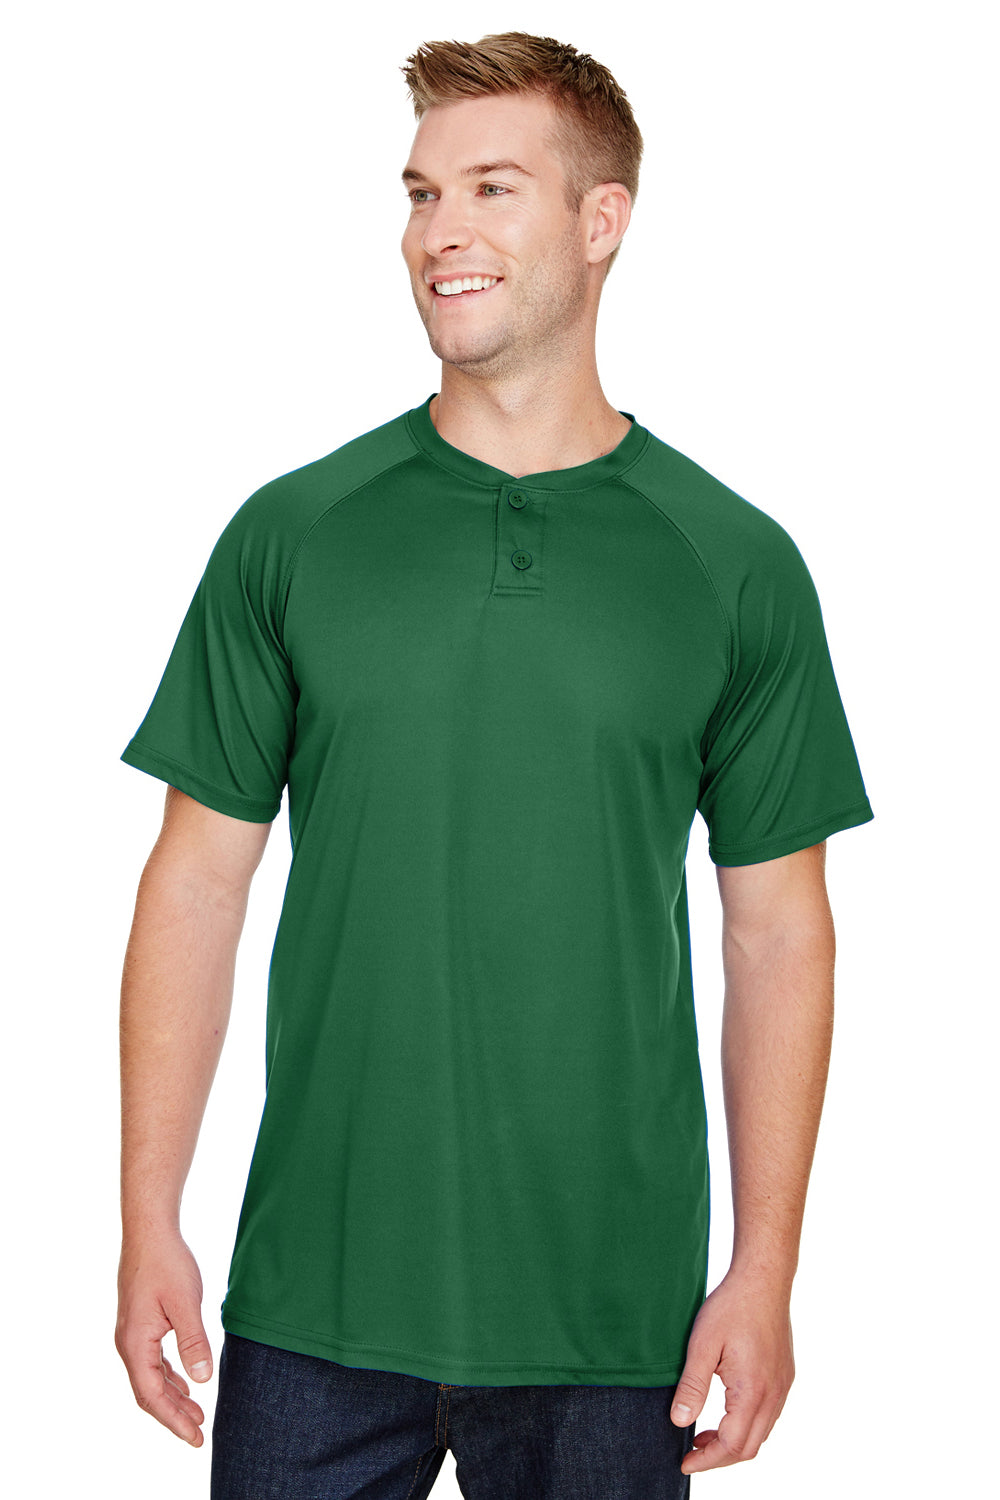 Augusta Sportswear AG1565 Mens Attain 2 Button Short Sleeve Baseball Jersey Dark Green Front